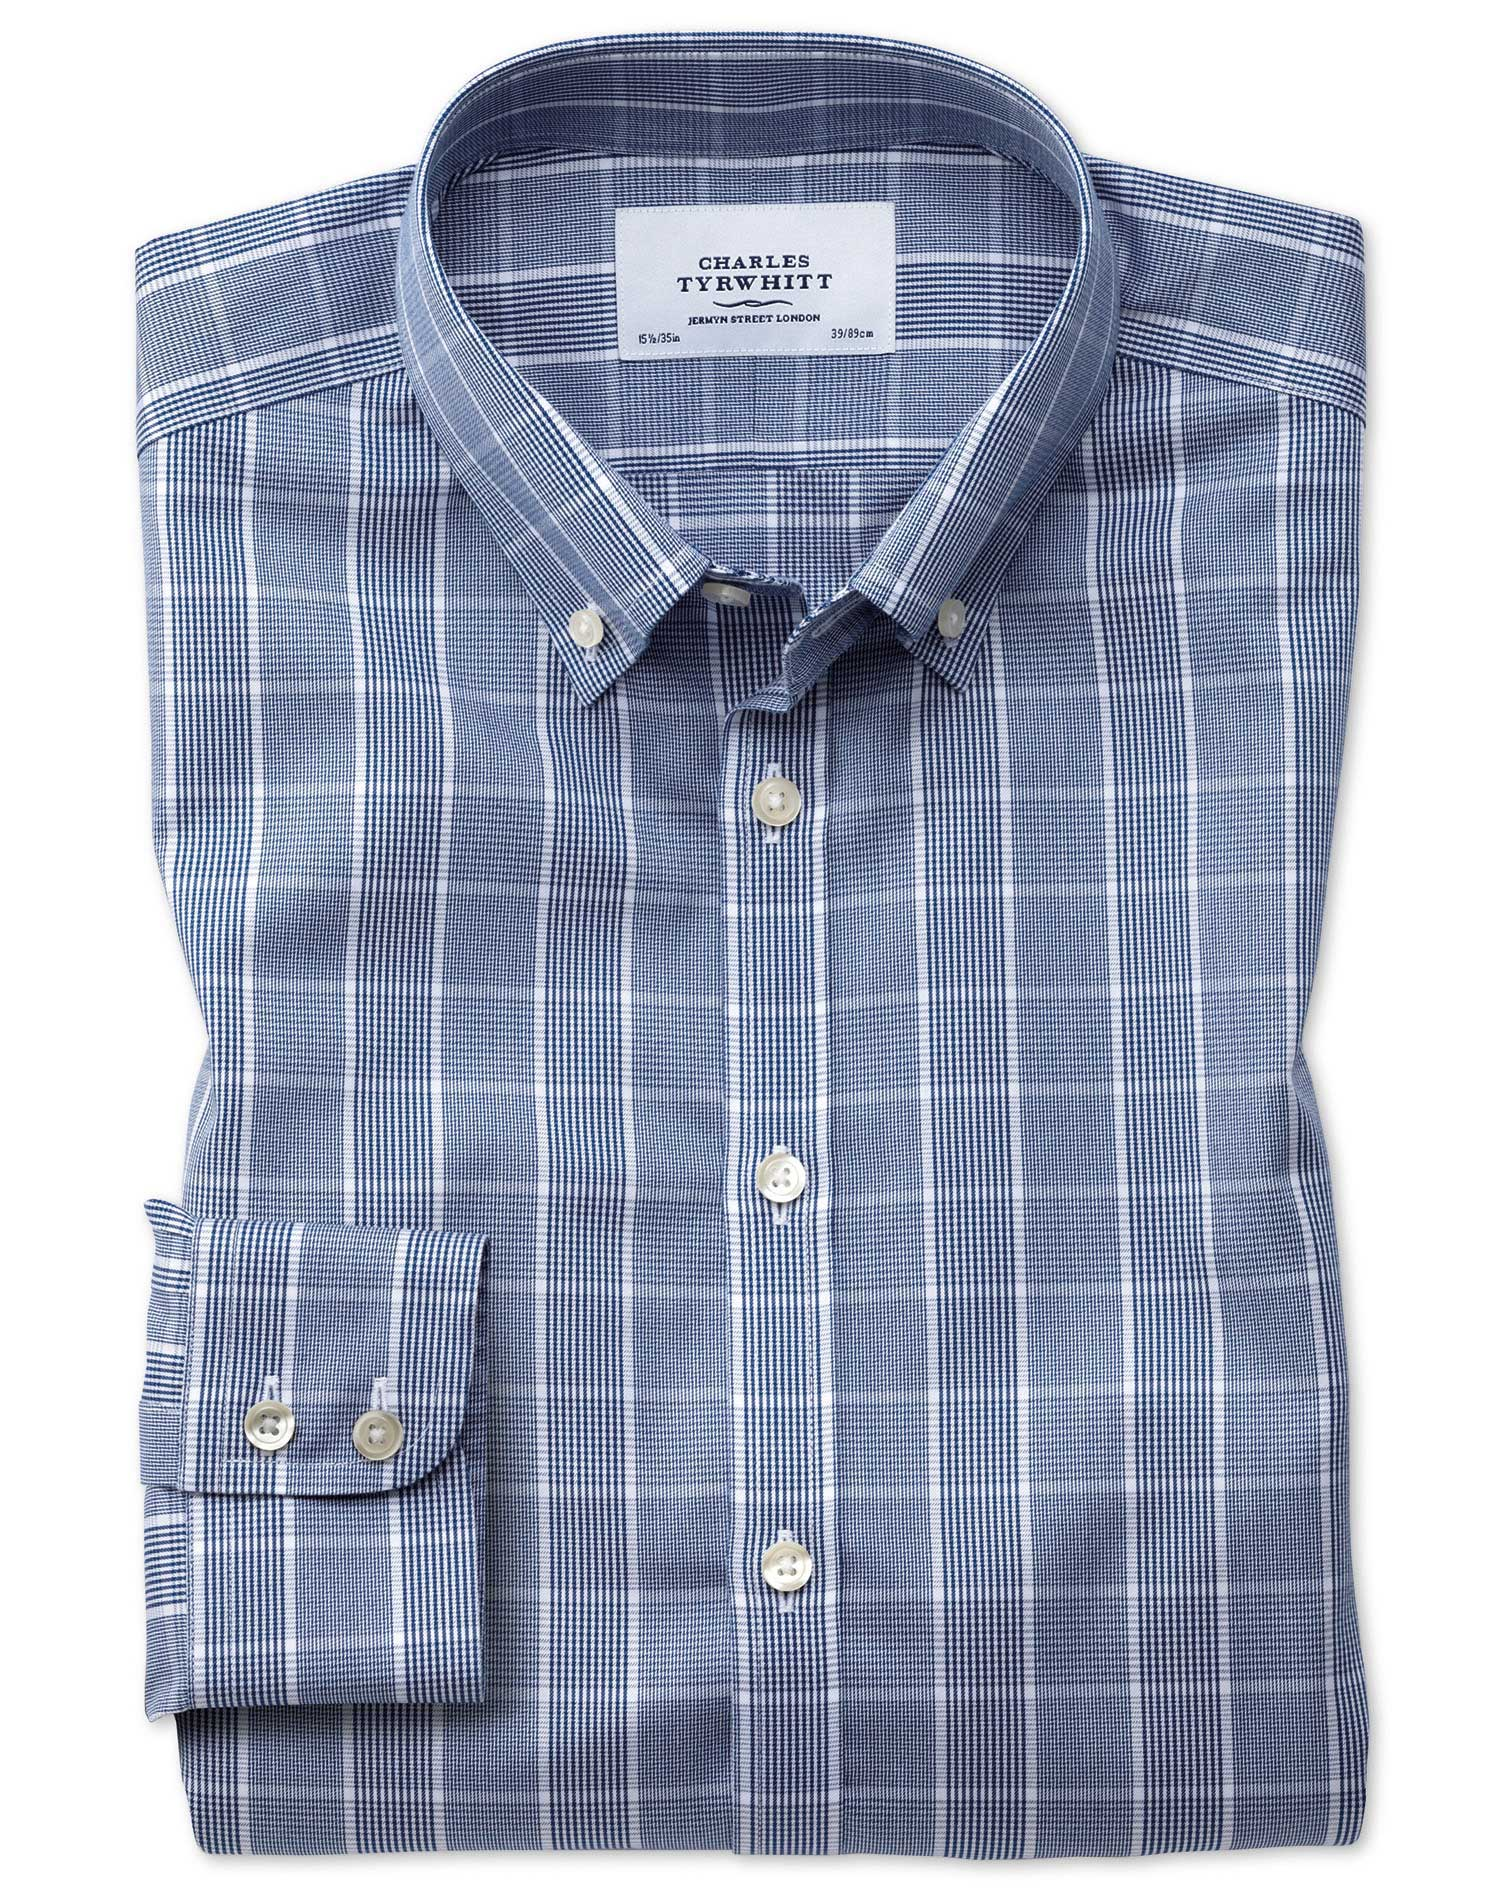 Extra Slim Fit Button-Down Non-Iron Prince Of Wales Navy Blue and White Cotton Formal Shirt Single C